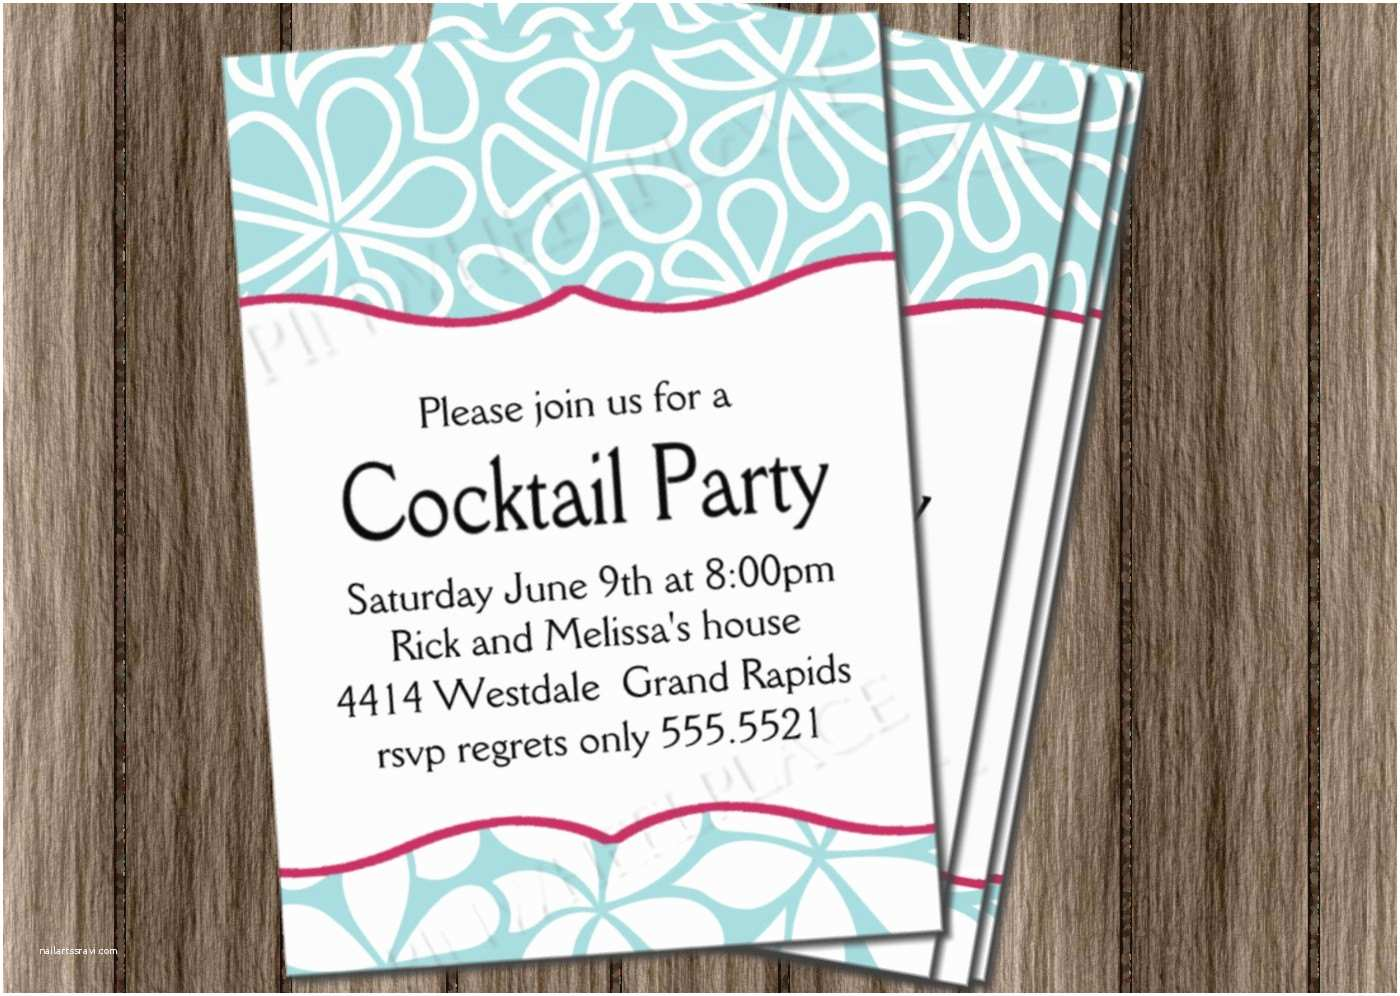 Cocktail Wedding Invitations Invitation Wording for Cocktail Party Mickey Mouse